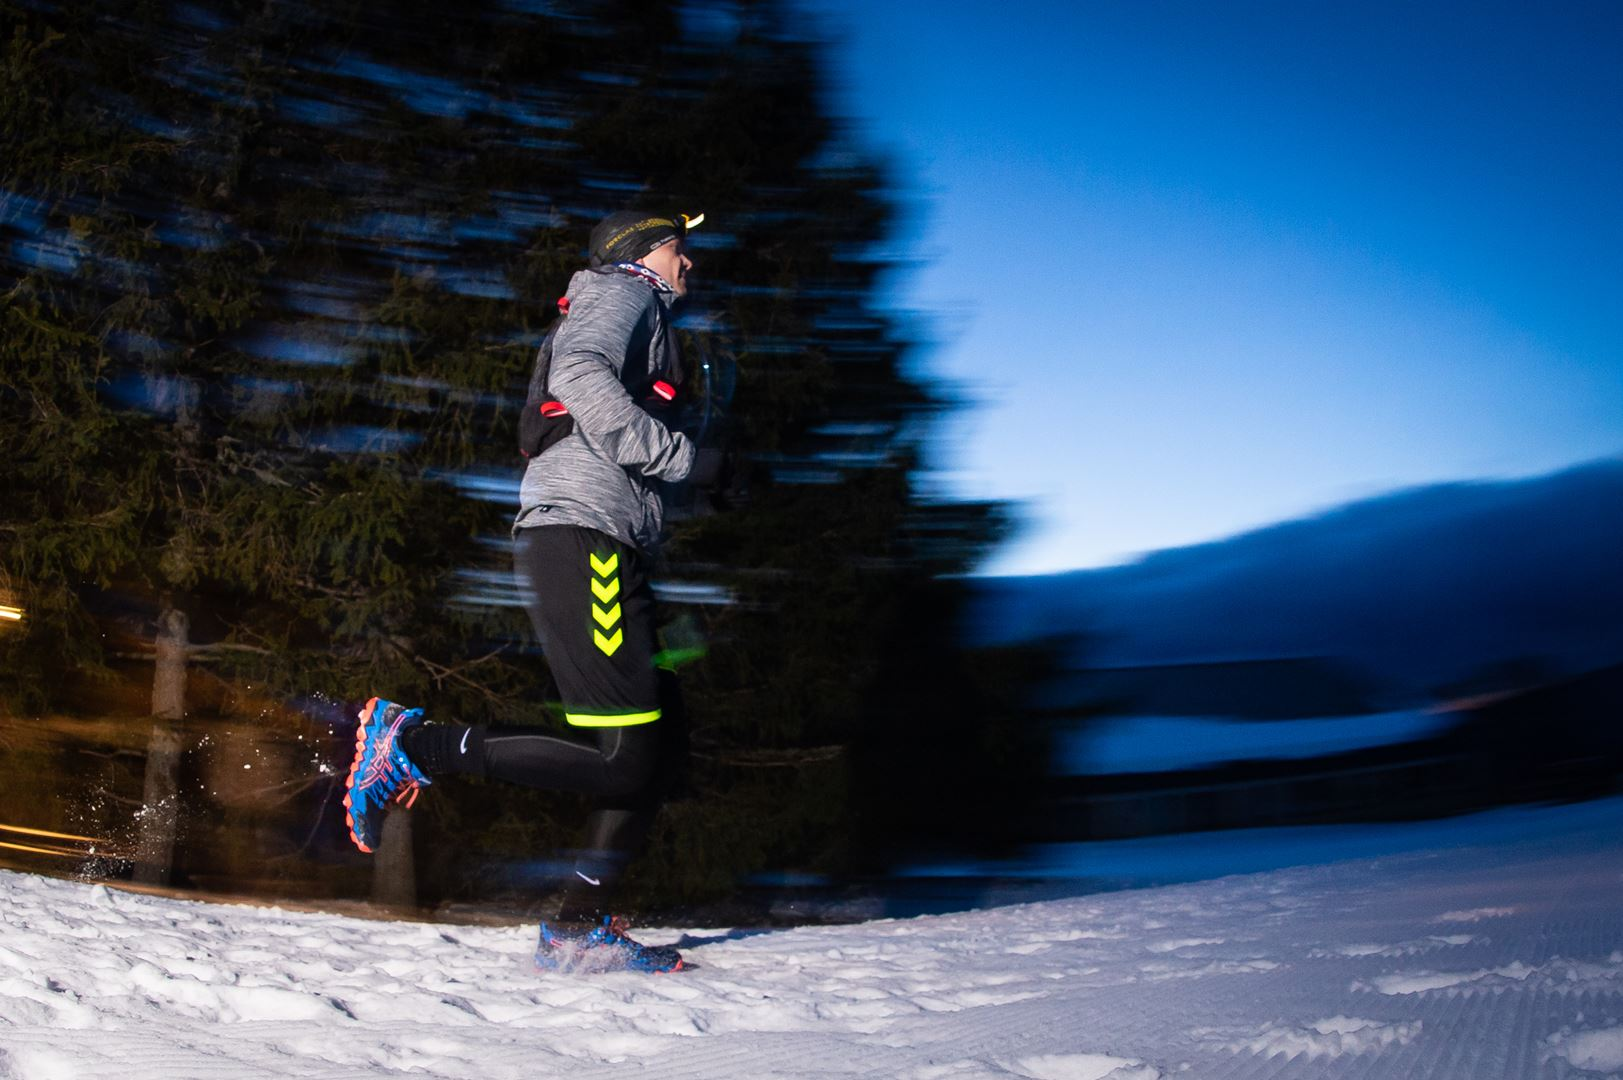 winter sibo trail 2020 HD aufildeslumieres 0015 - RESULTATS ET PHOTOS DU WINTER SIBOTRAIL LANS EN VERCORS (07/03/2020)